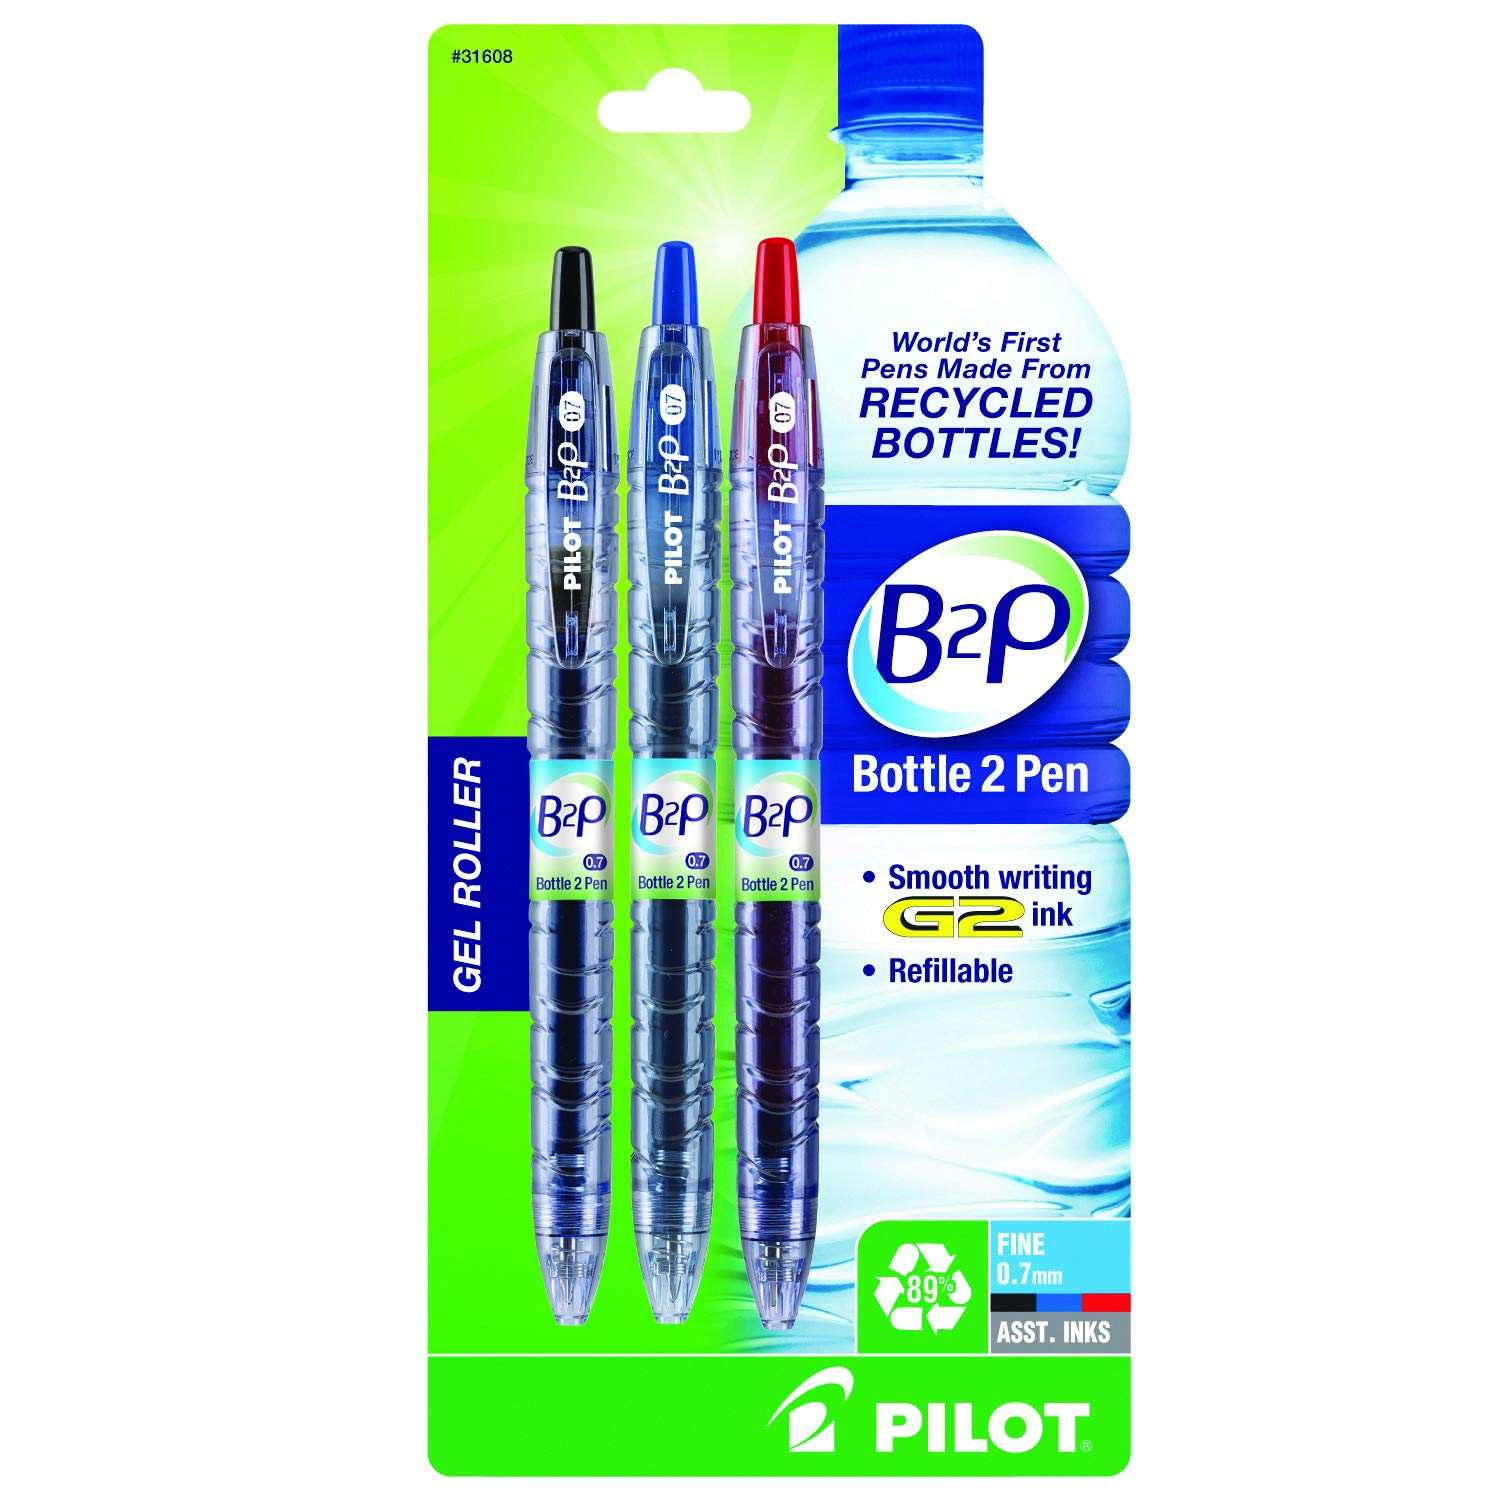 PILOT B2P - Bottle to Pen Refillable & Retractable Rolling Ball Gel Pen Made From Recycled Bottles, Fine Point, Black/Blue/Red G2 Inks, 3-Pack (31608)